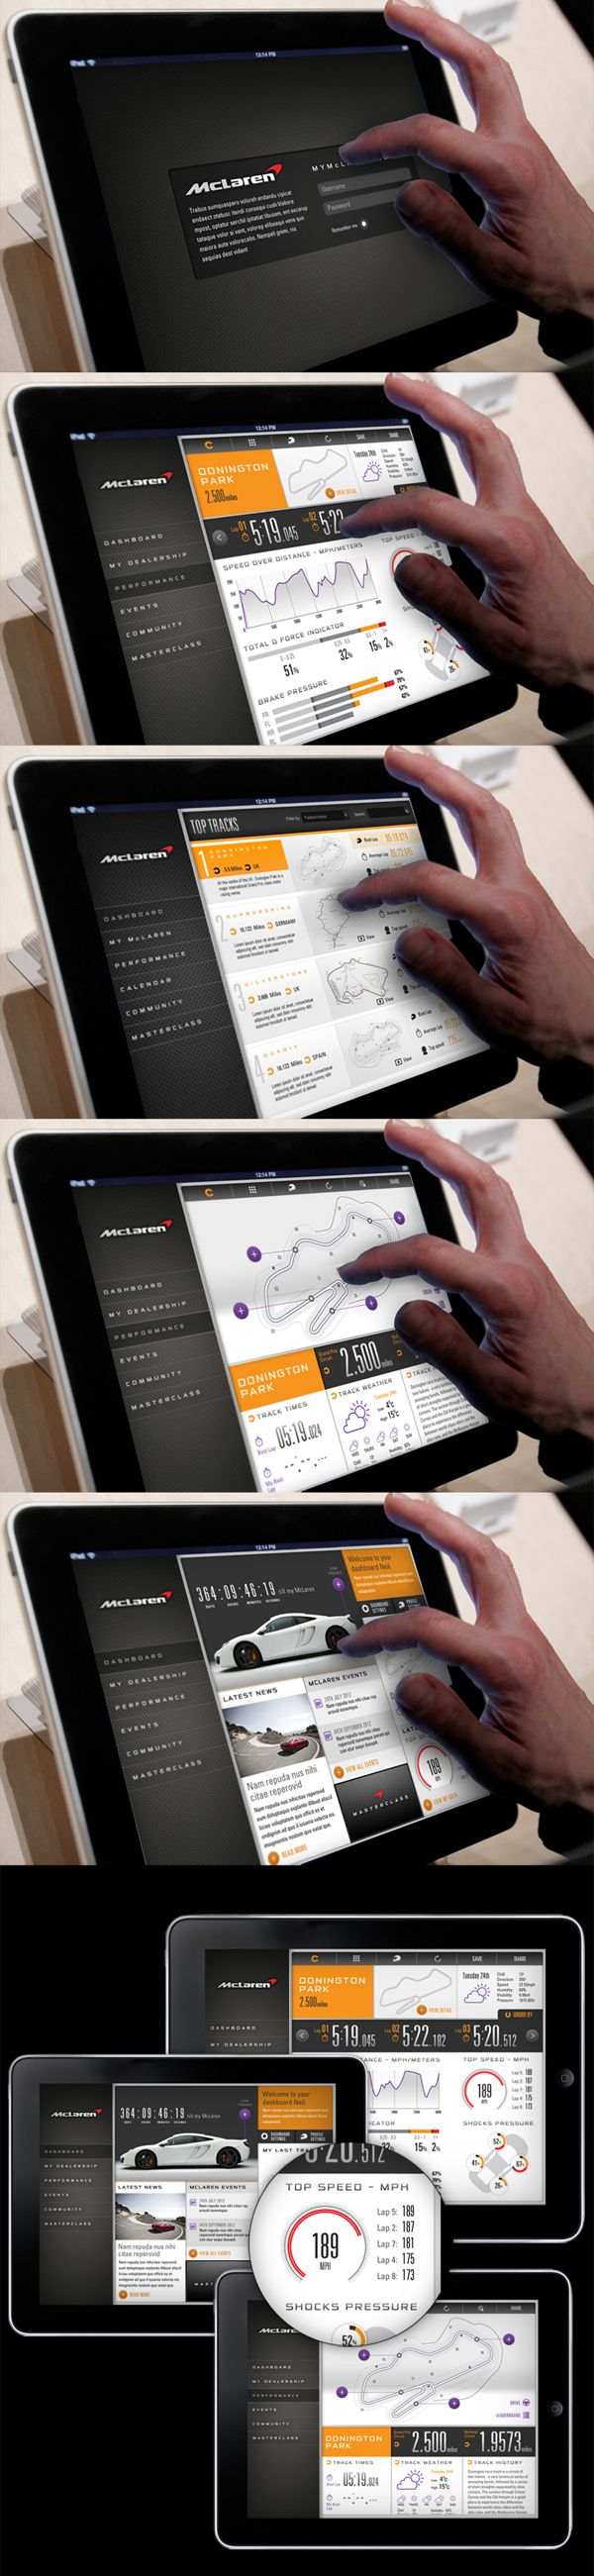 McLaren Automotive Connected Car by Thomas Moeller, via Behance